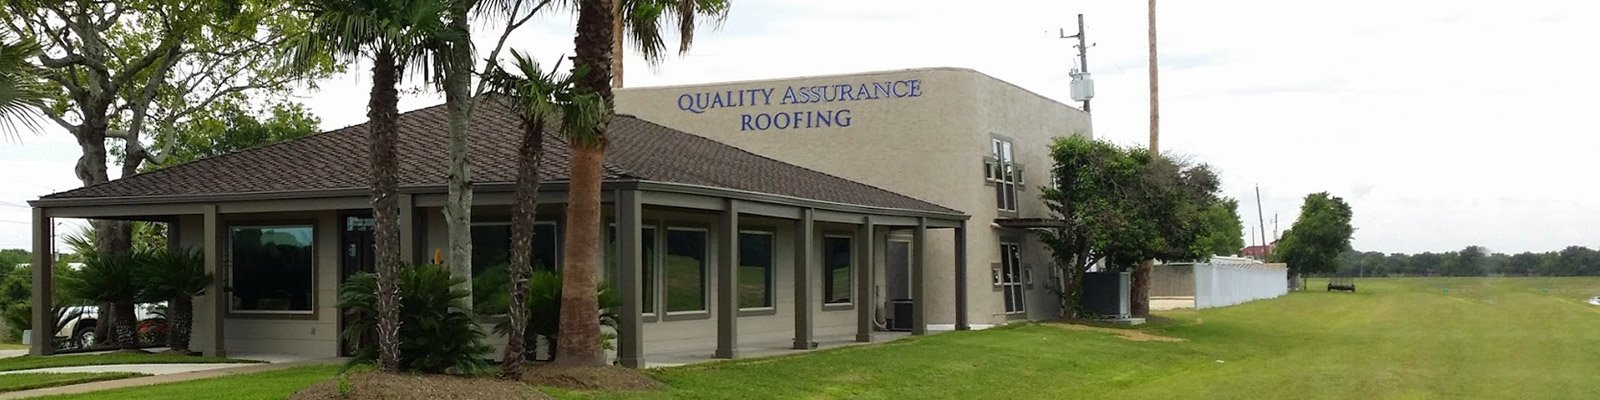 roofing in brookshire tx